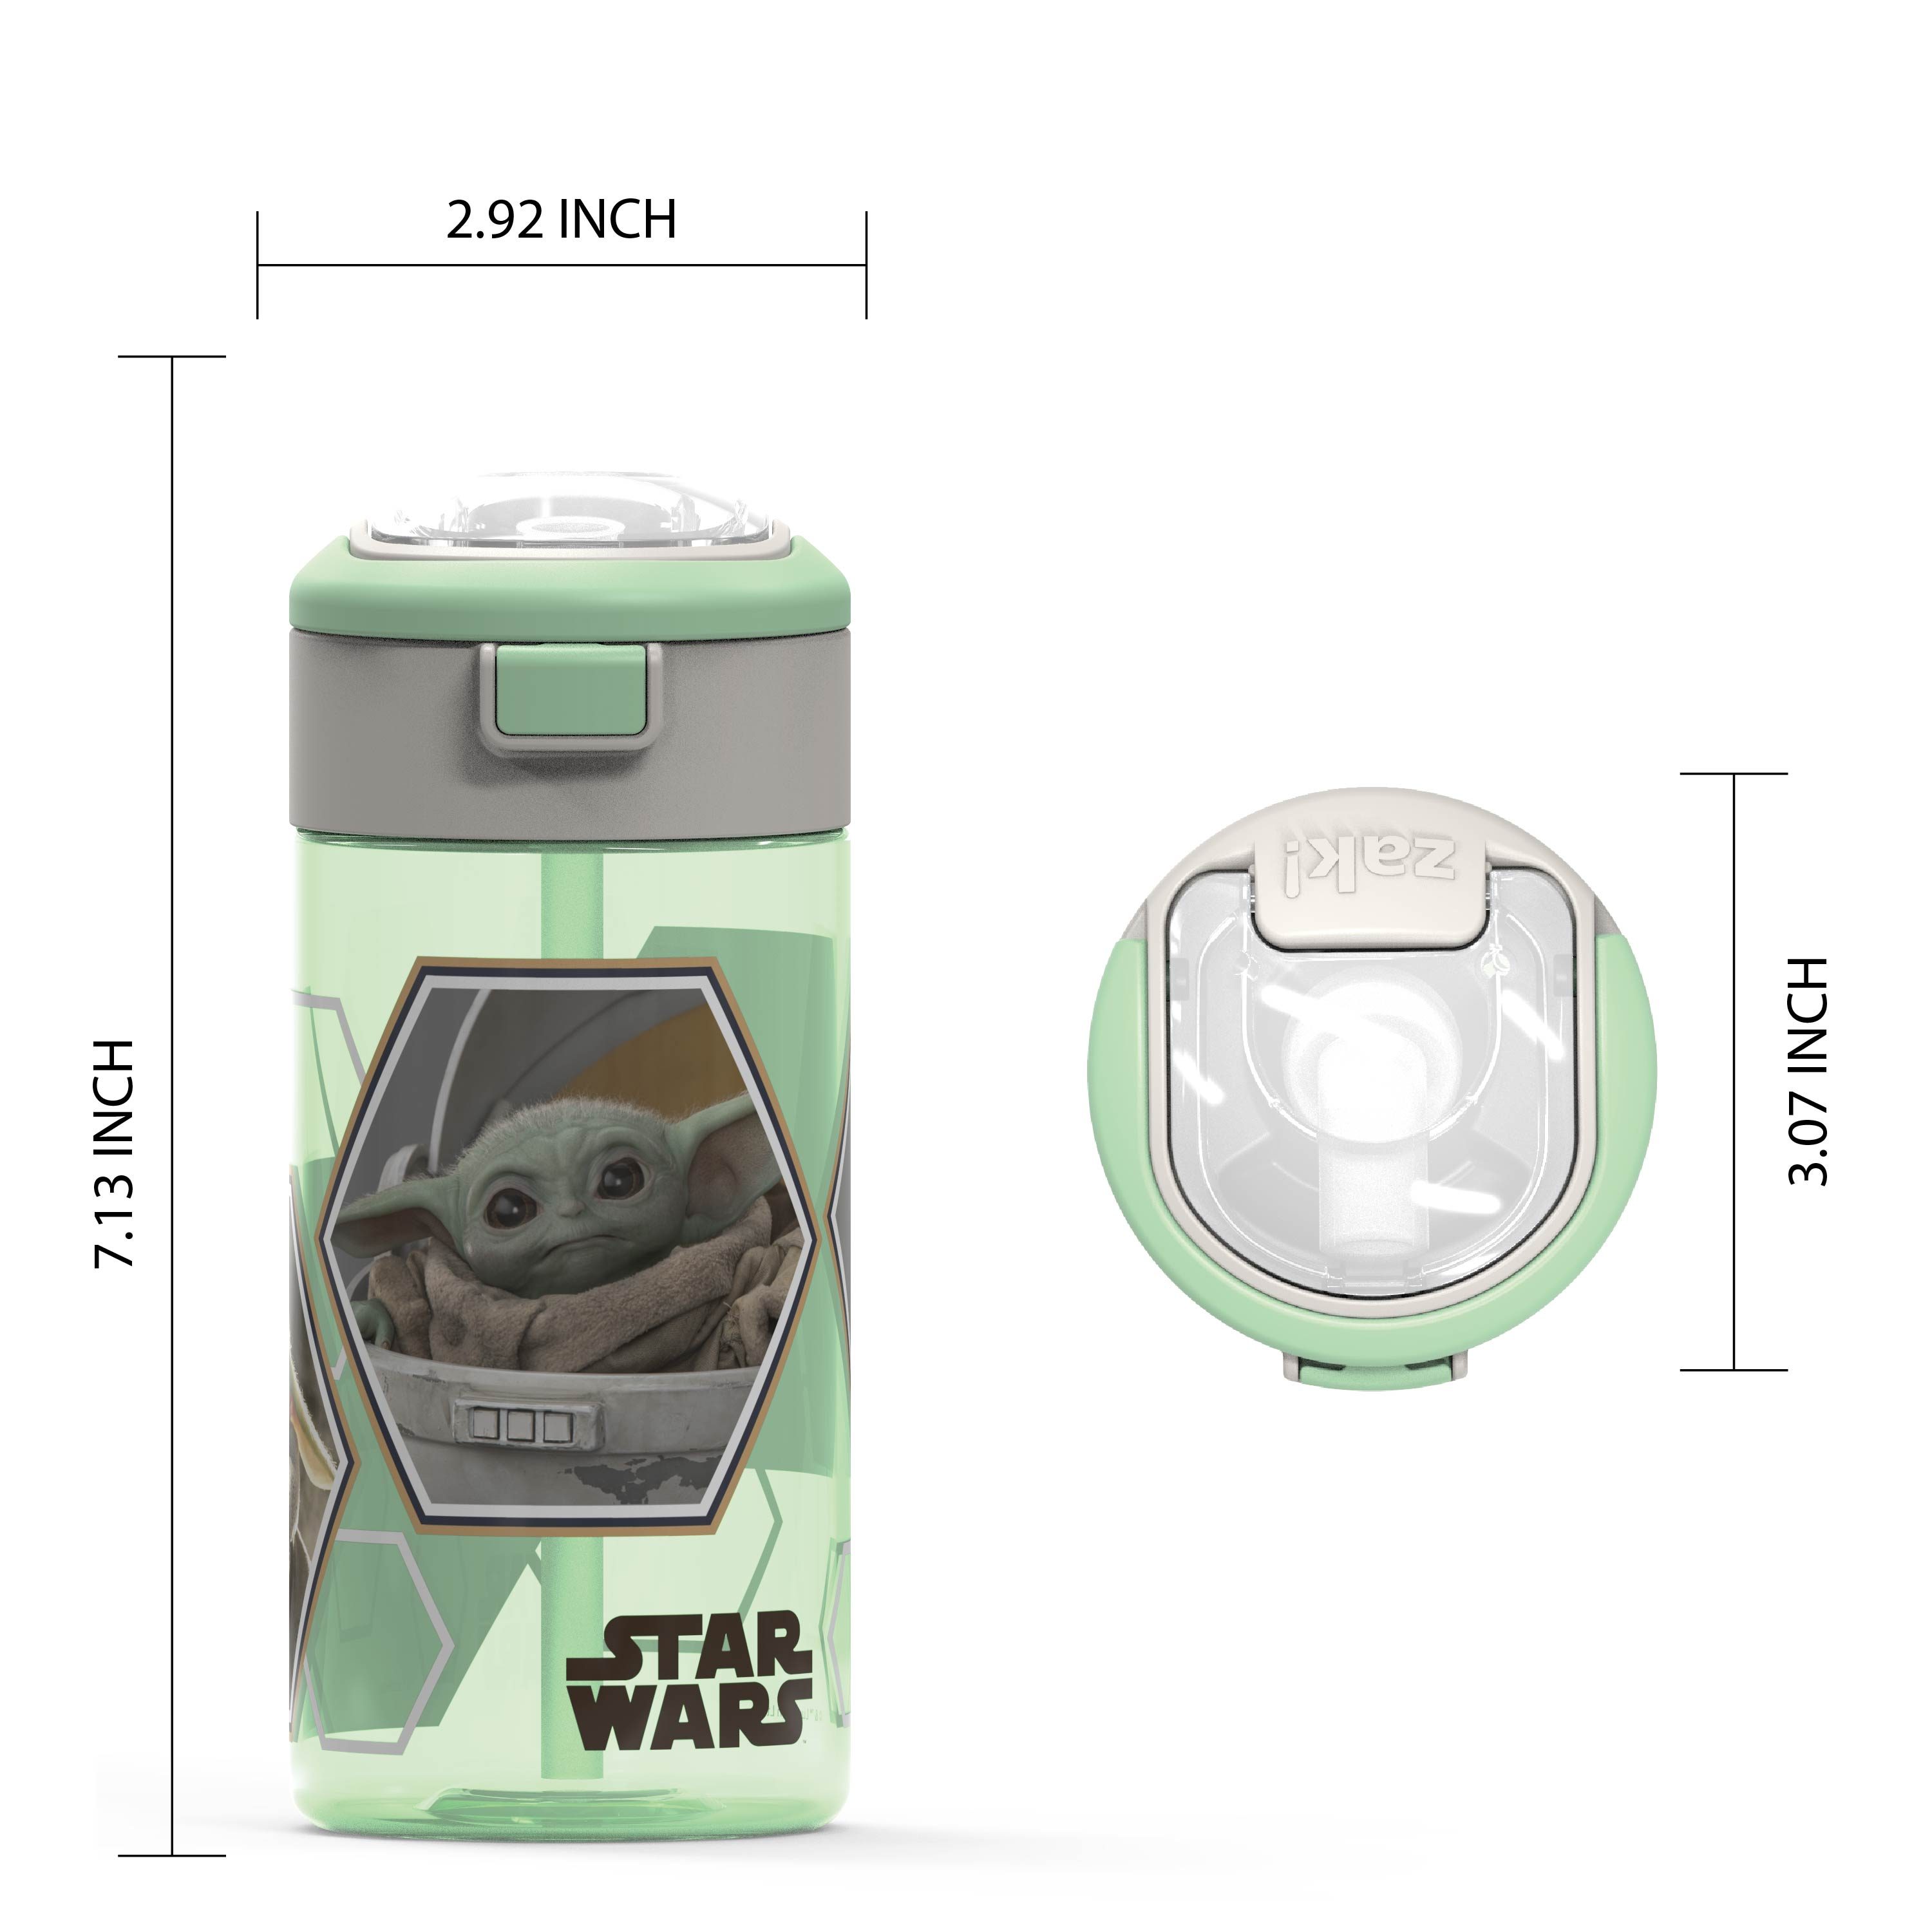 Star Wars: The Mandalorian 18 ounce Reusable Water Bottle with Straw, The Mandalorian slideshow image 5